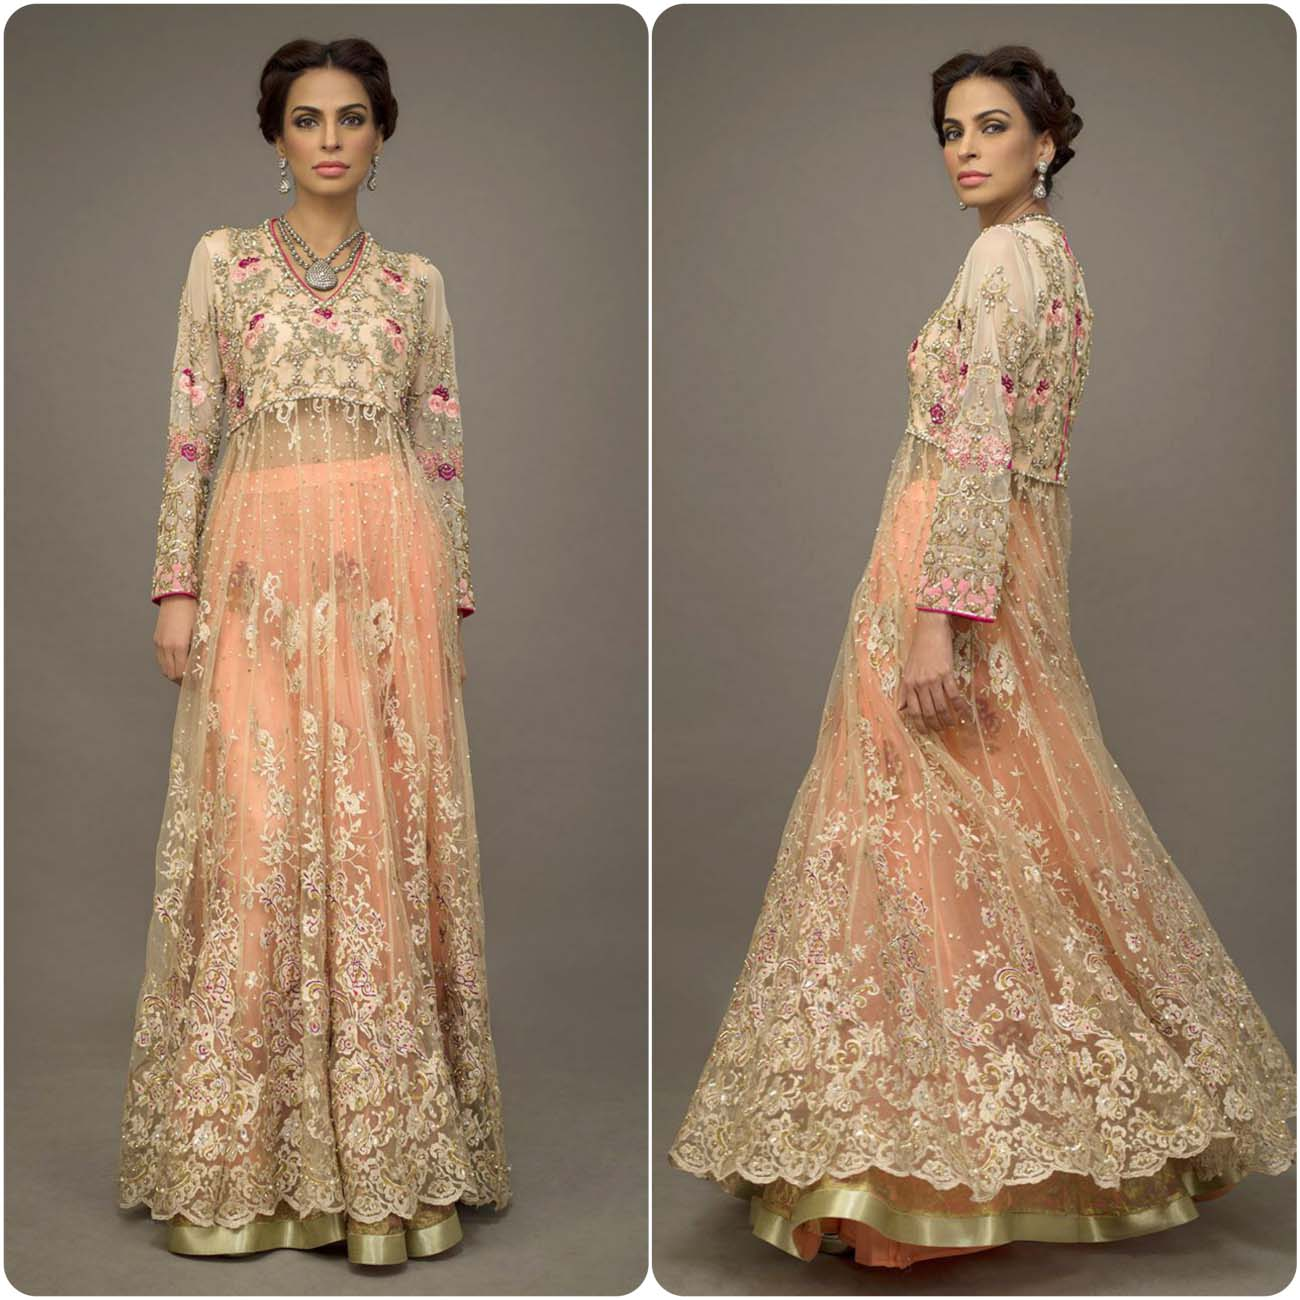 Deepak perwani Wedding Dresses Collection Fo Women 2016-2017...styloplanet (15)